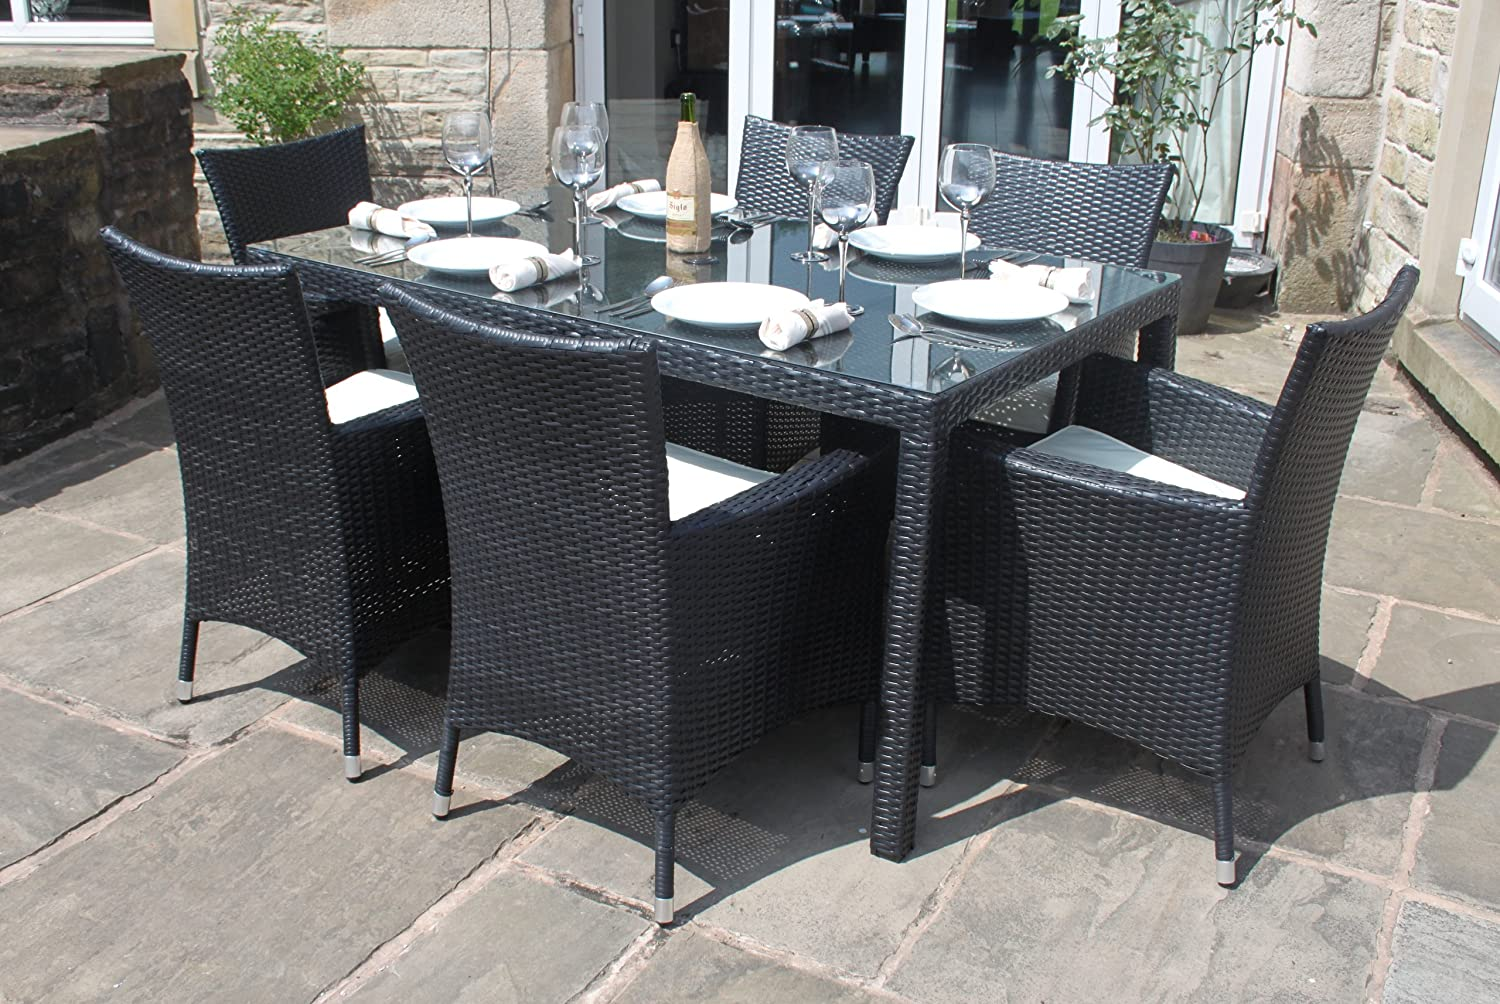 weatherproof rattan 6 seater garden furniture dining set in black amazoncouk garden outdoors - Garden Furniture 6 Seater